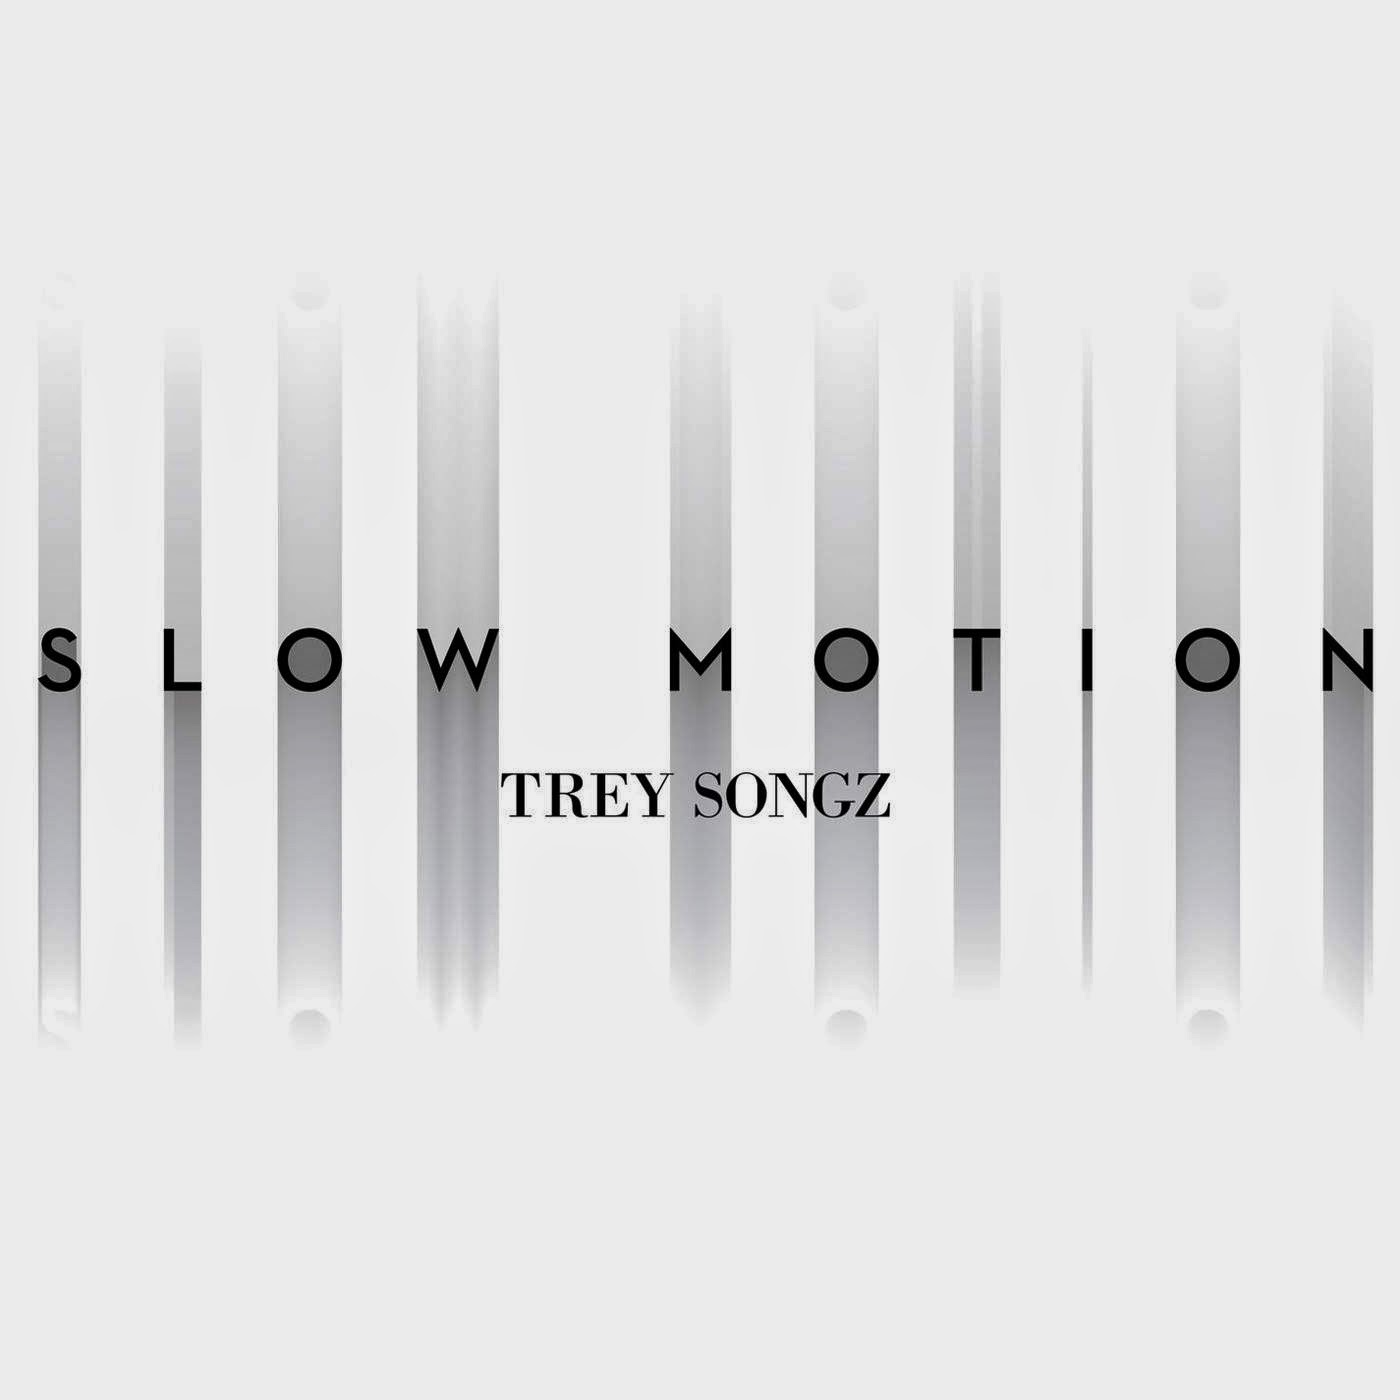 Trey Songz - Slow Motion - Single Cover